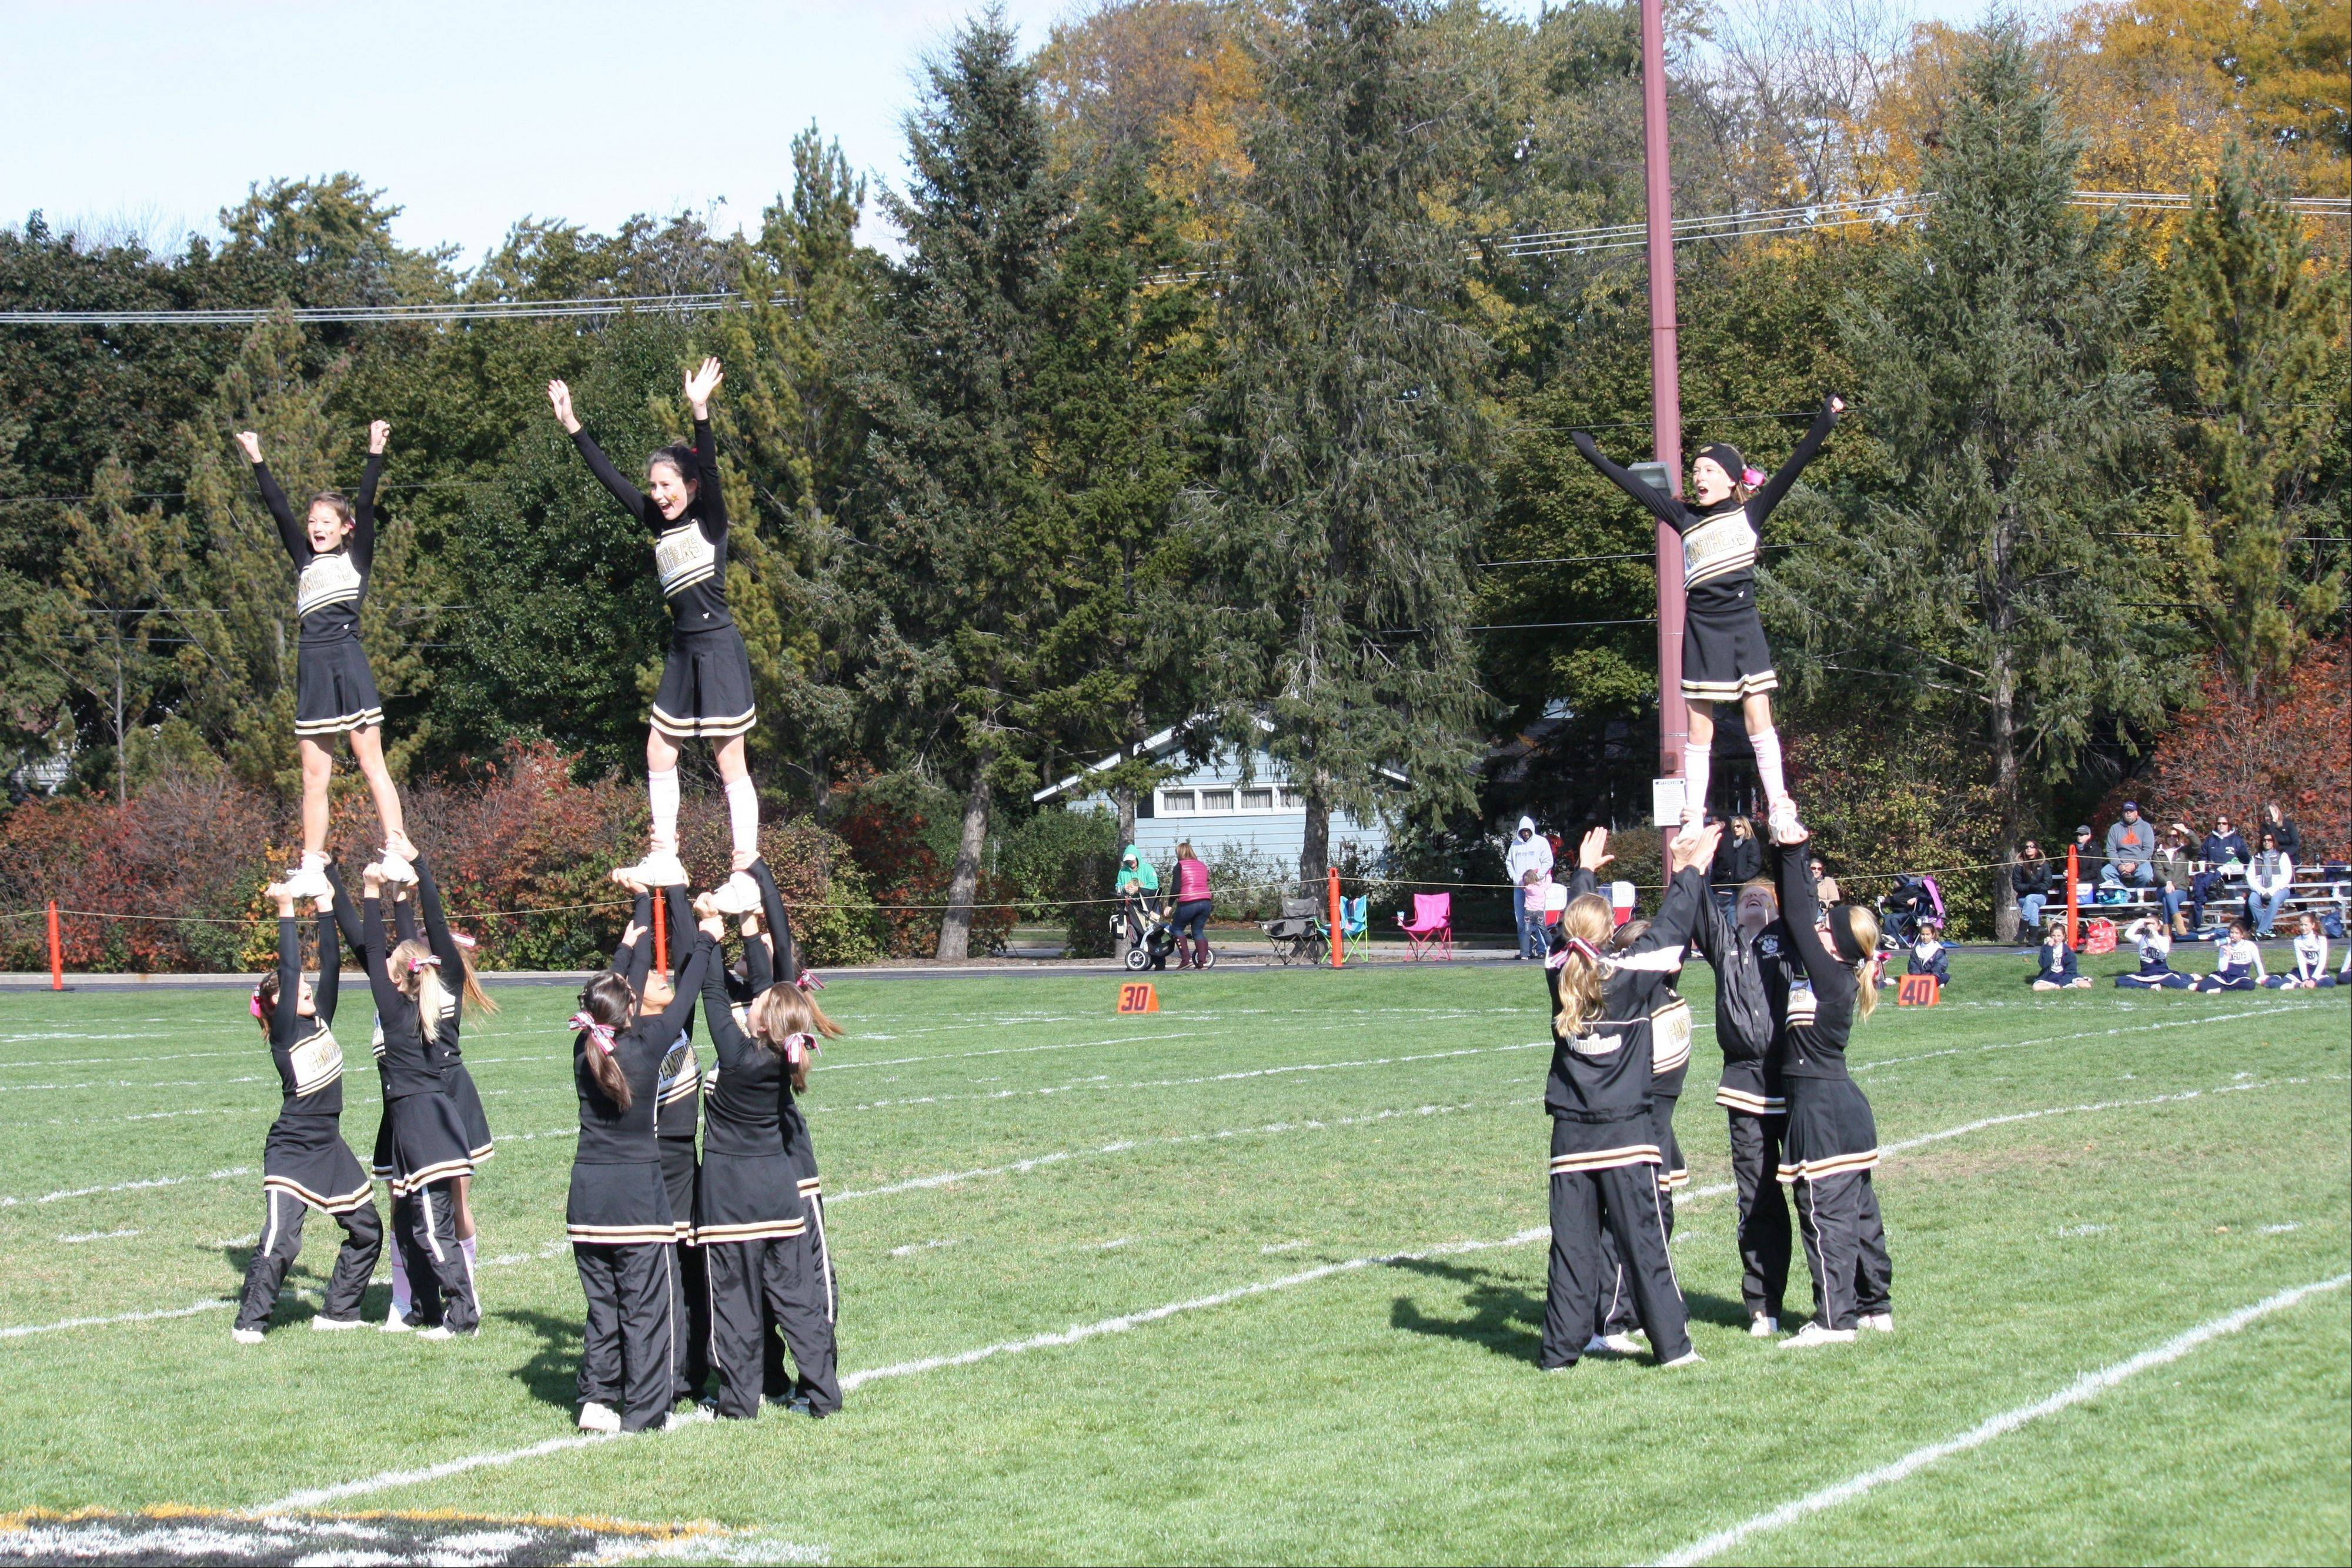 The Spirit Squad performs during homecoming weekend Oct. 6-7 in Palatine.